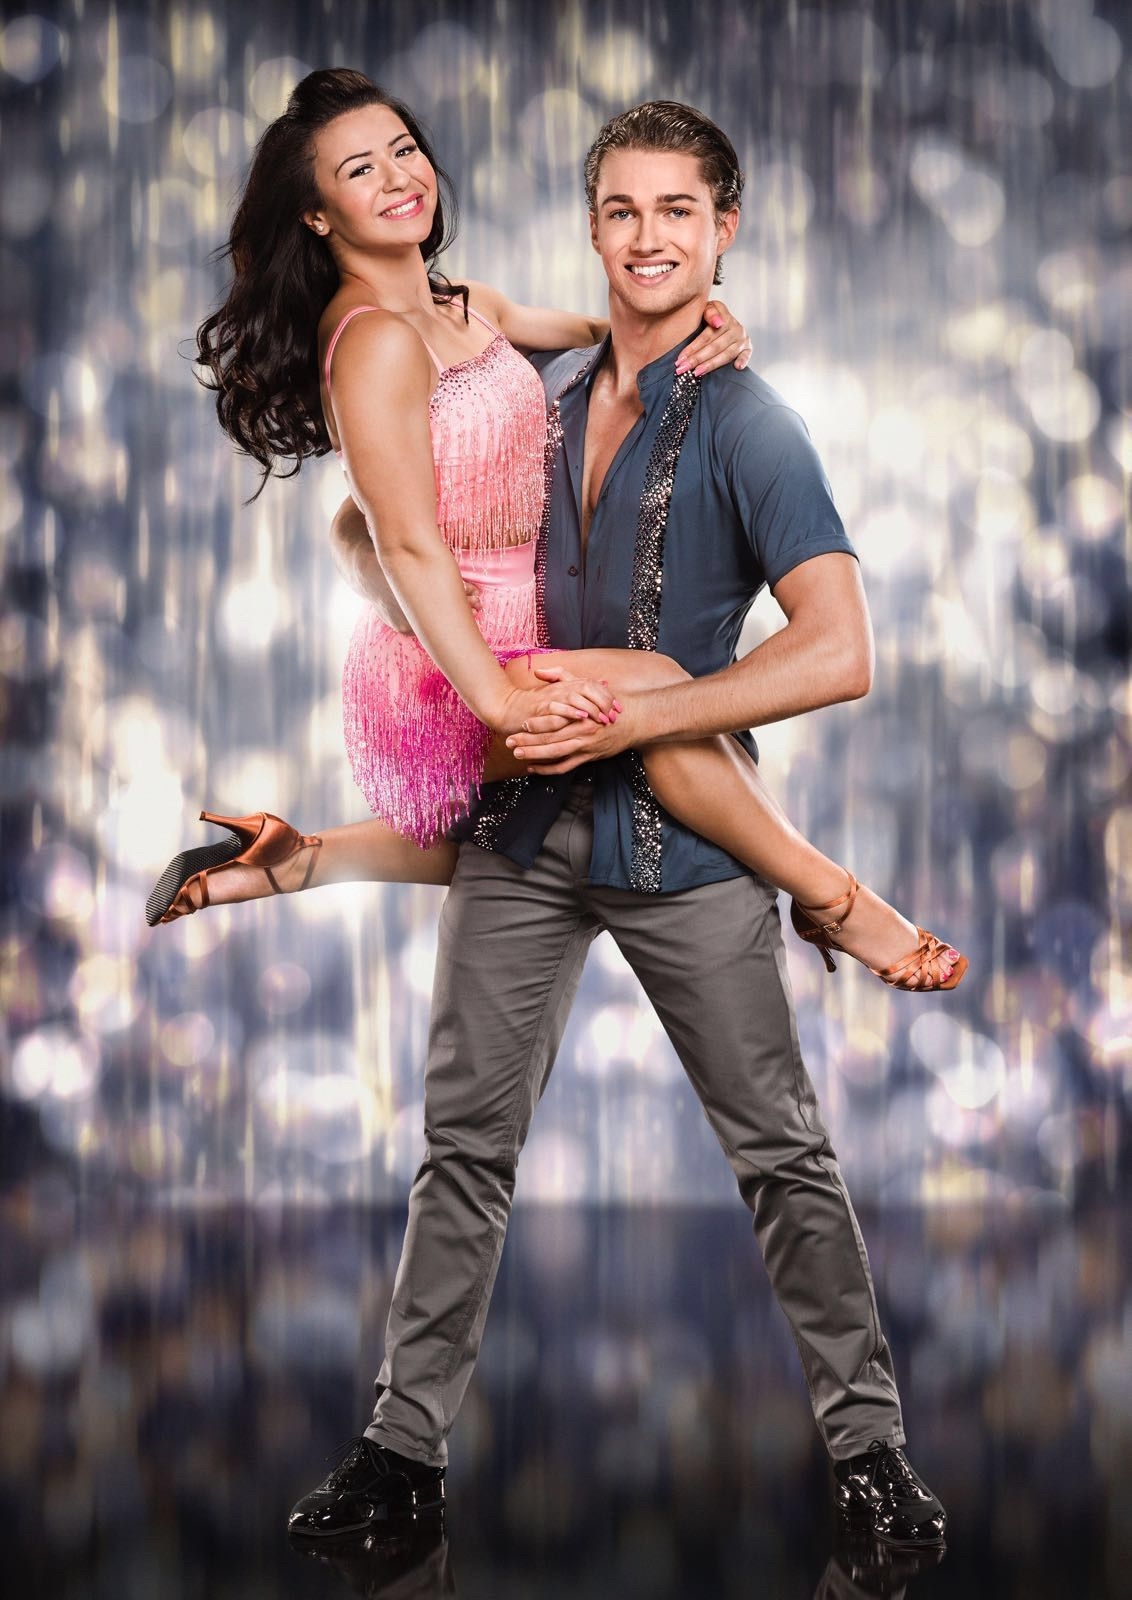 strictly come dancing 2017 dating couples